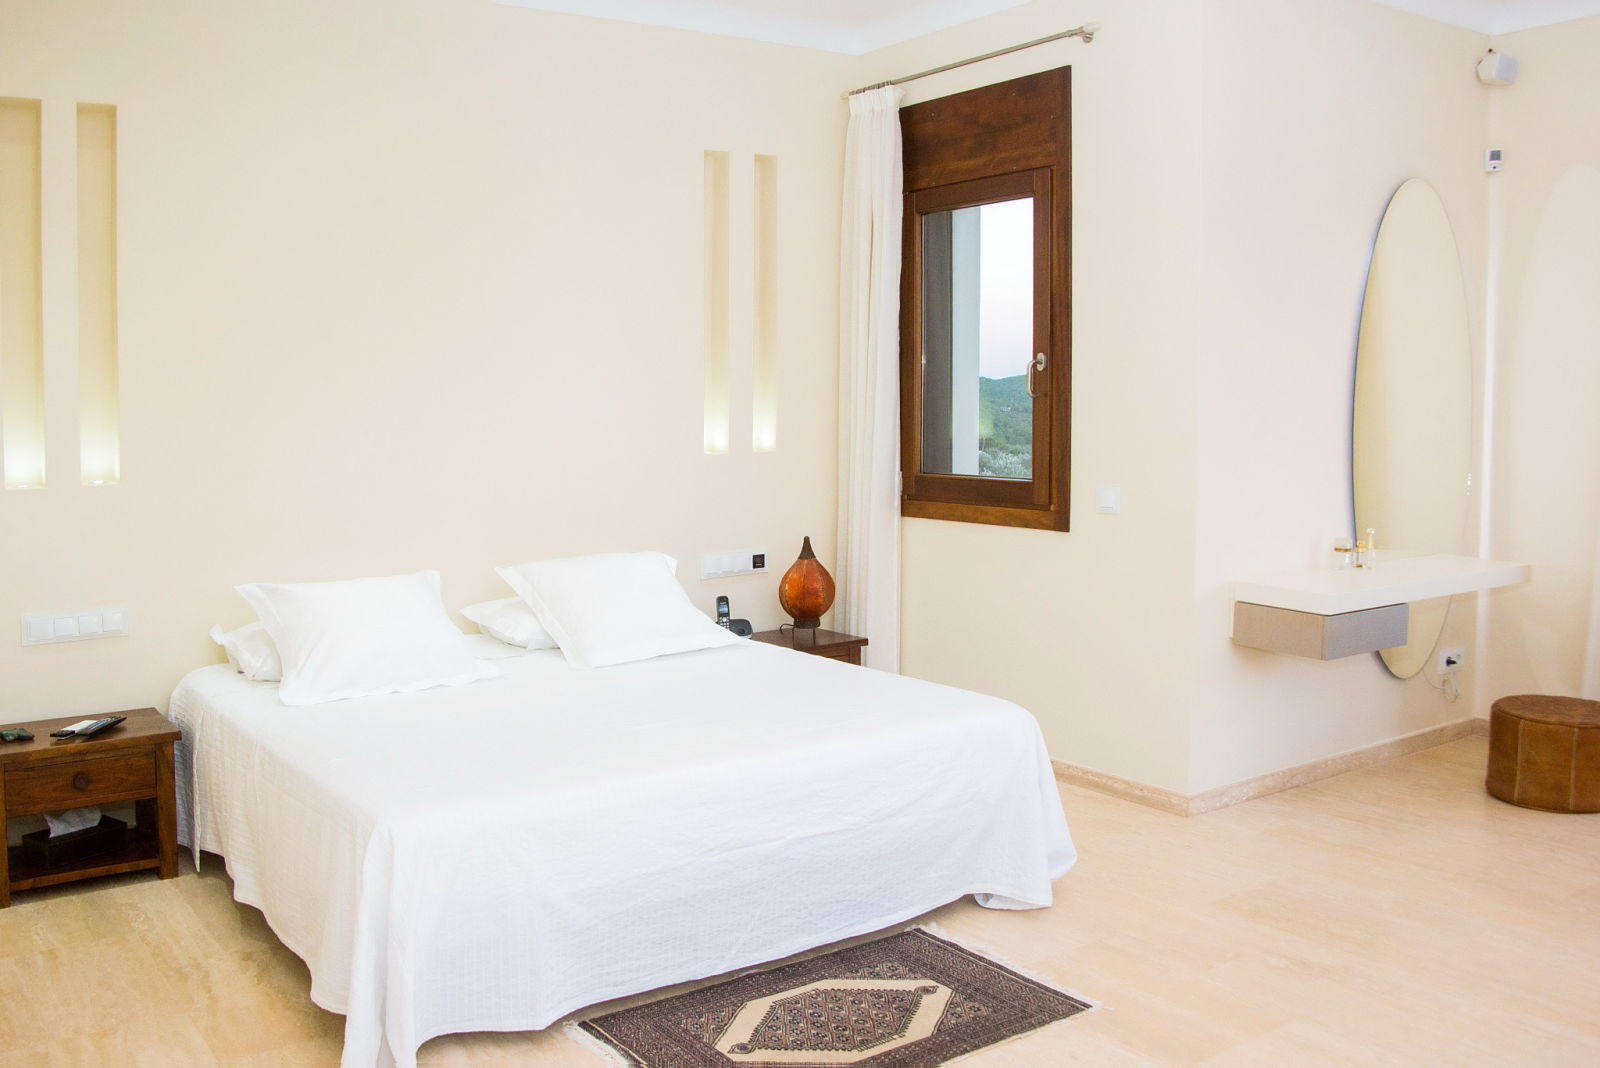 Bedroom in Ibizan luxury villa